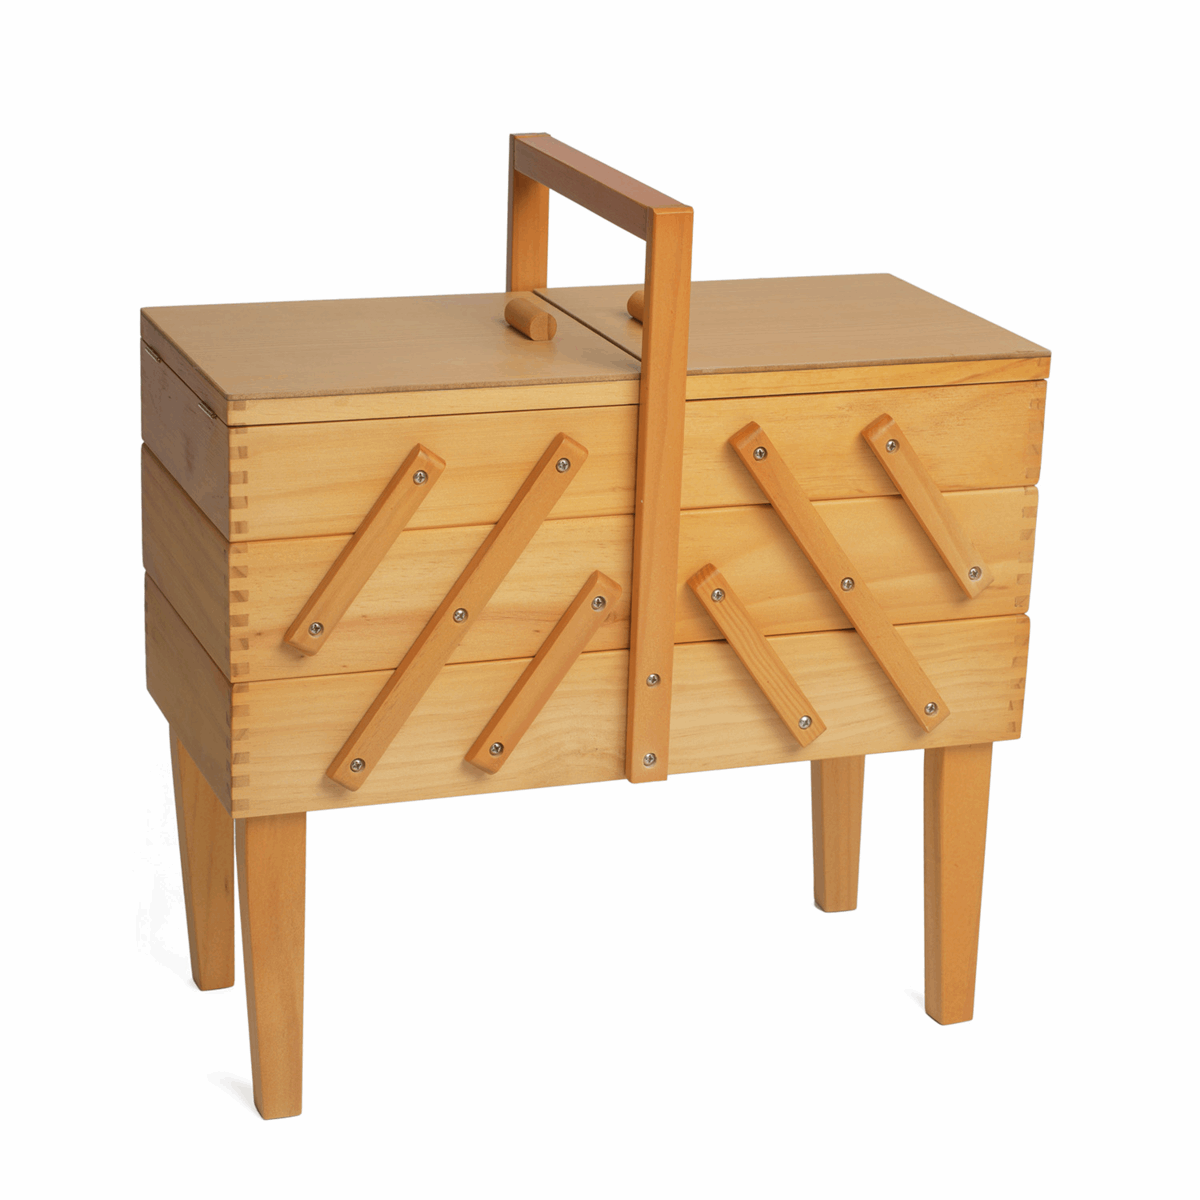 Picture of Sewing Box: Cantilever: Wood: 3 Tier with Legs